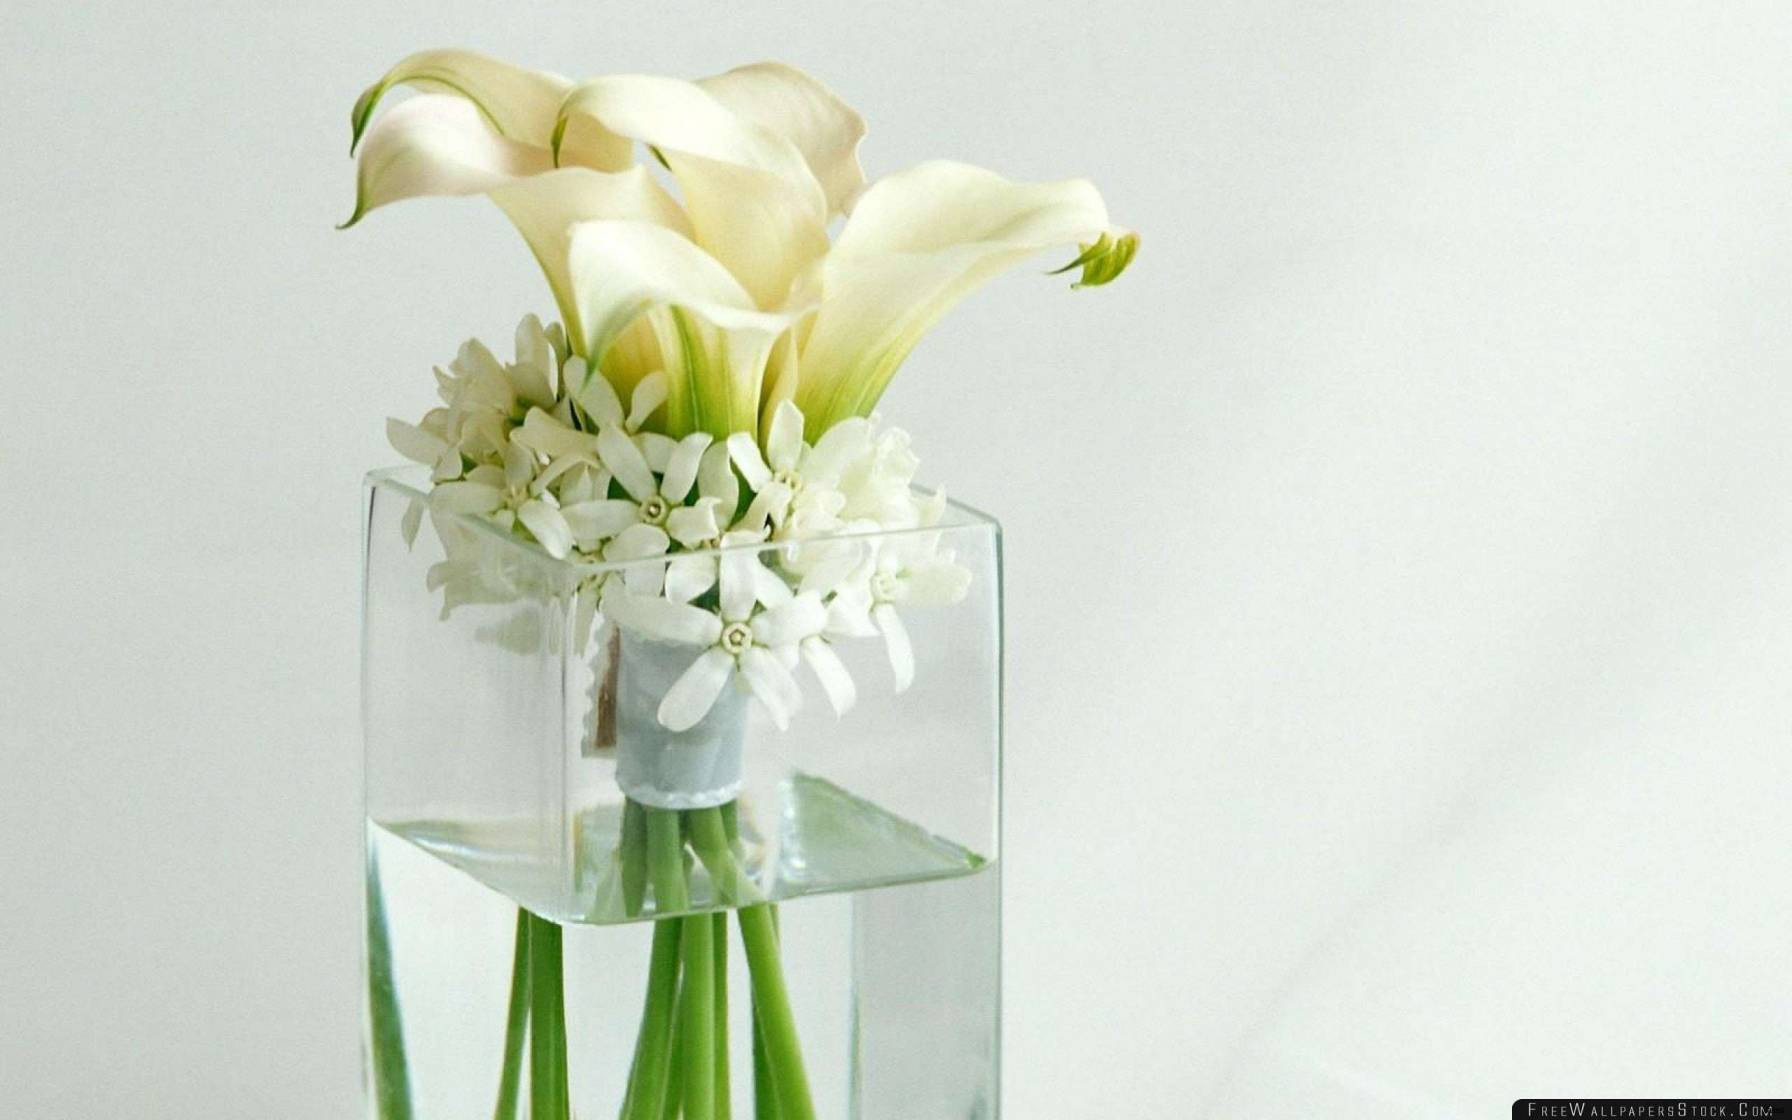 Large Glass Vase with Lid Of 10 Flower Pot Ideas Favorite for Elegant Room Splusna Com Page with Regard to Tall Vase Centerpiece Ideas Vases Flowers In Water 0d Artificial Inspiration Glass Vase Centerpiece Ideas